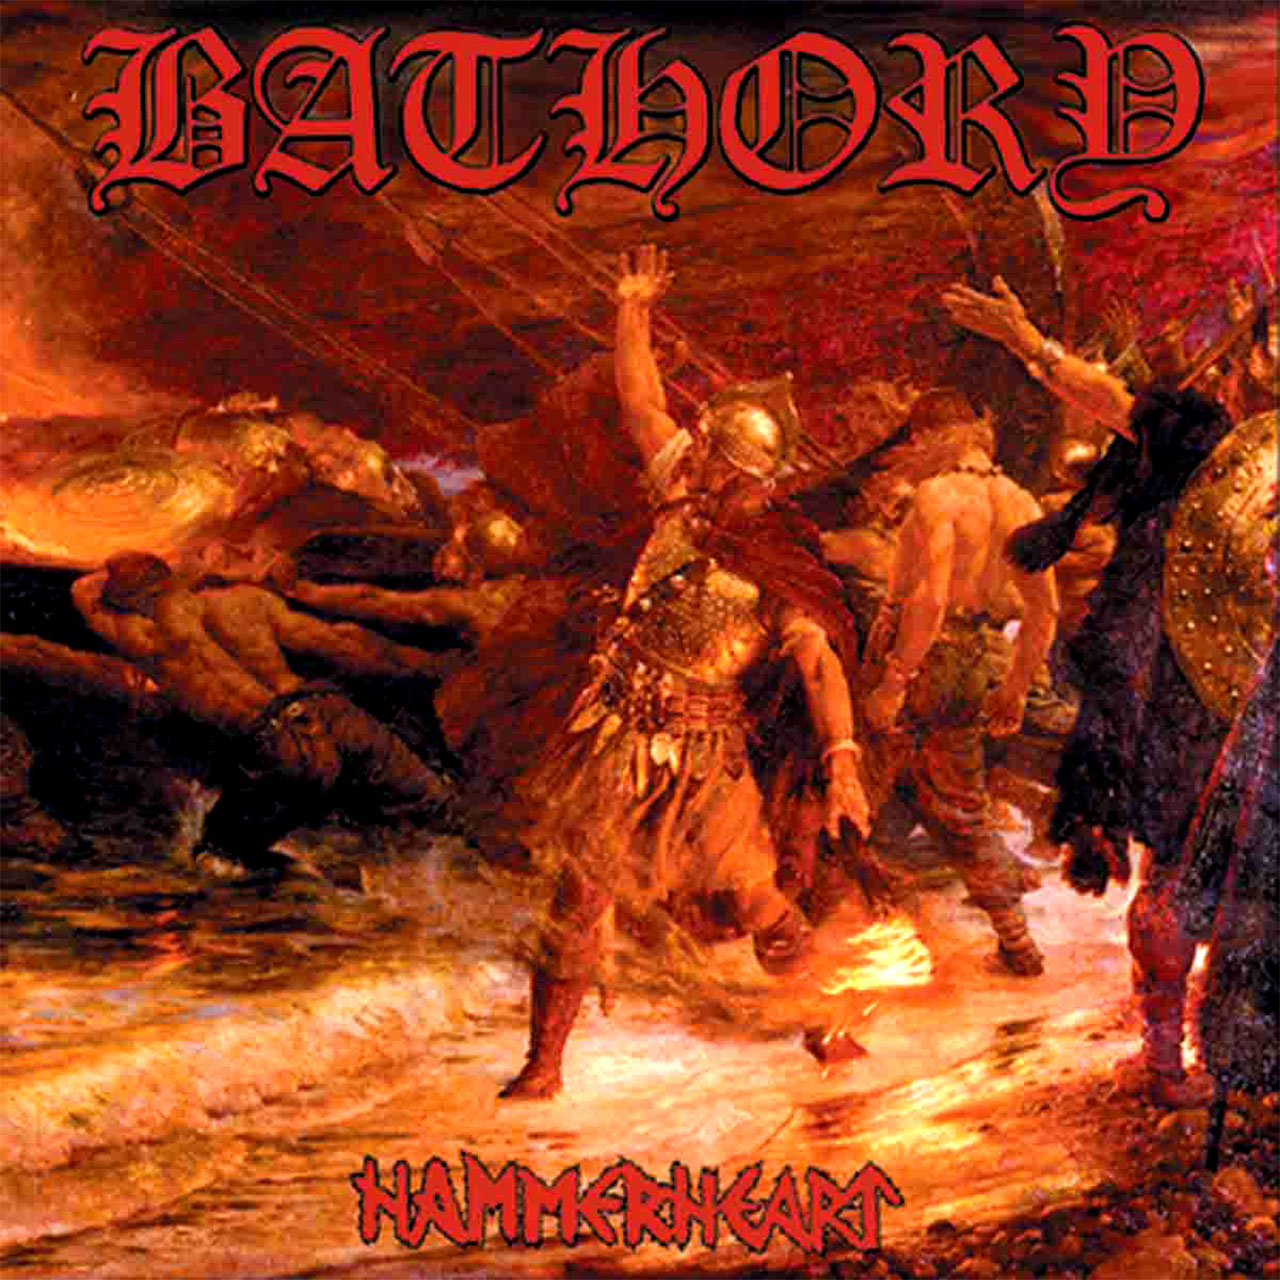 Bathory - Hammerheart (CD)